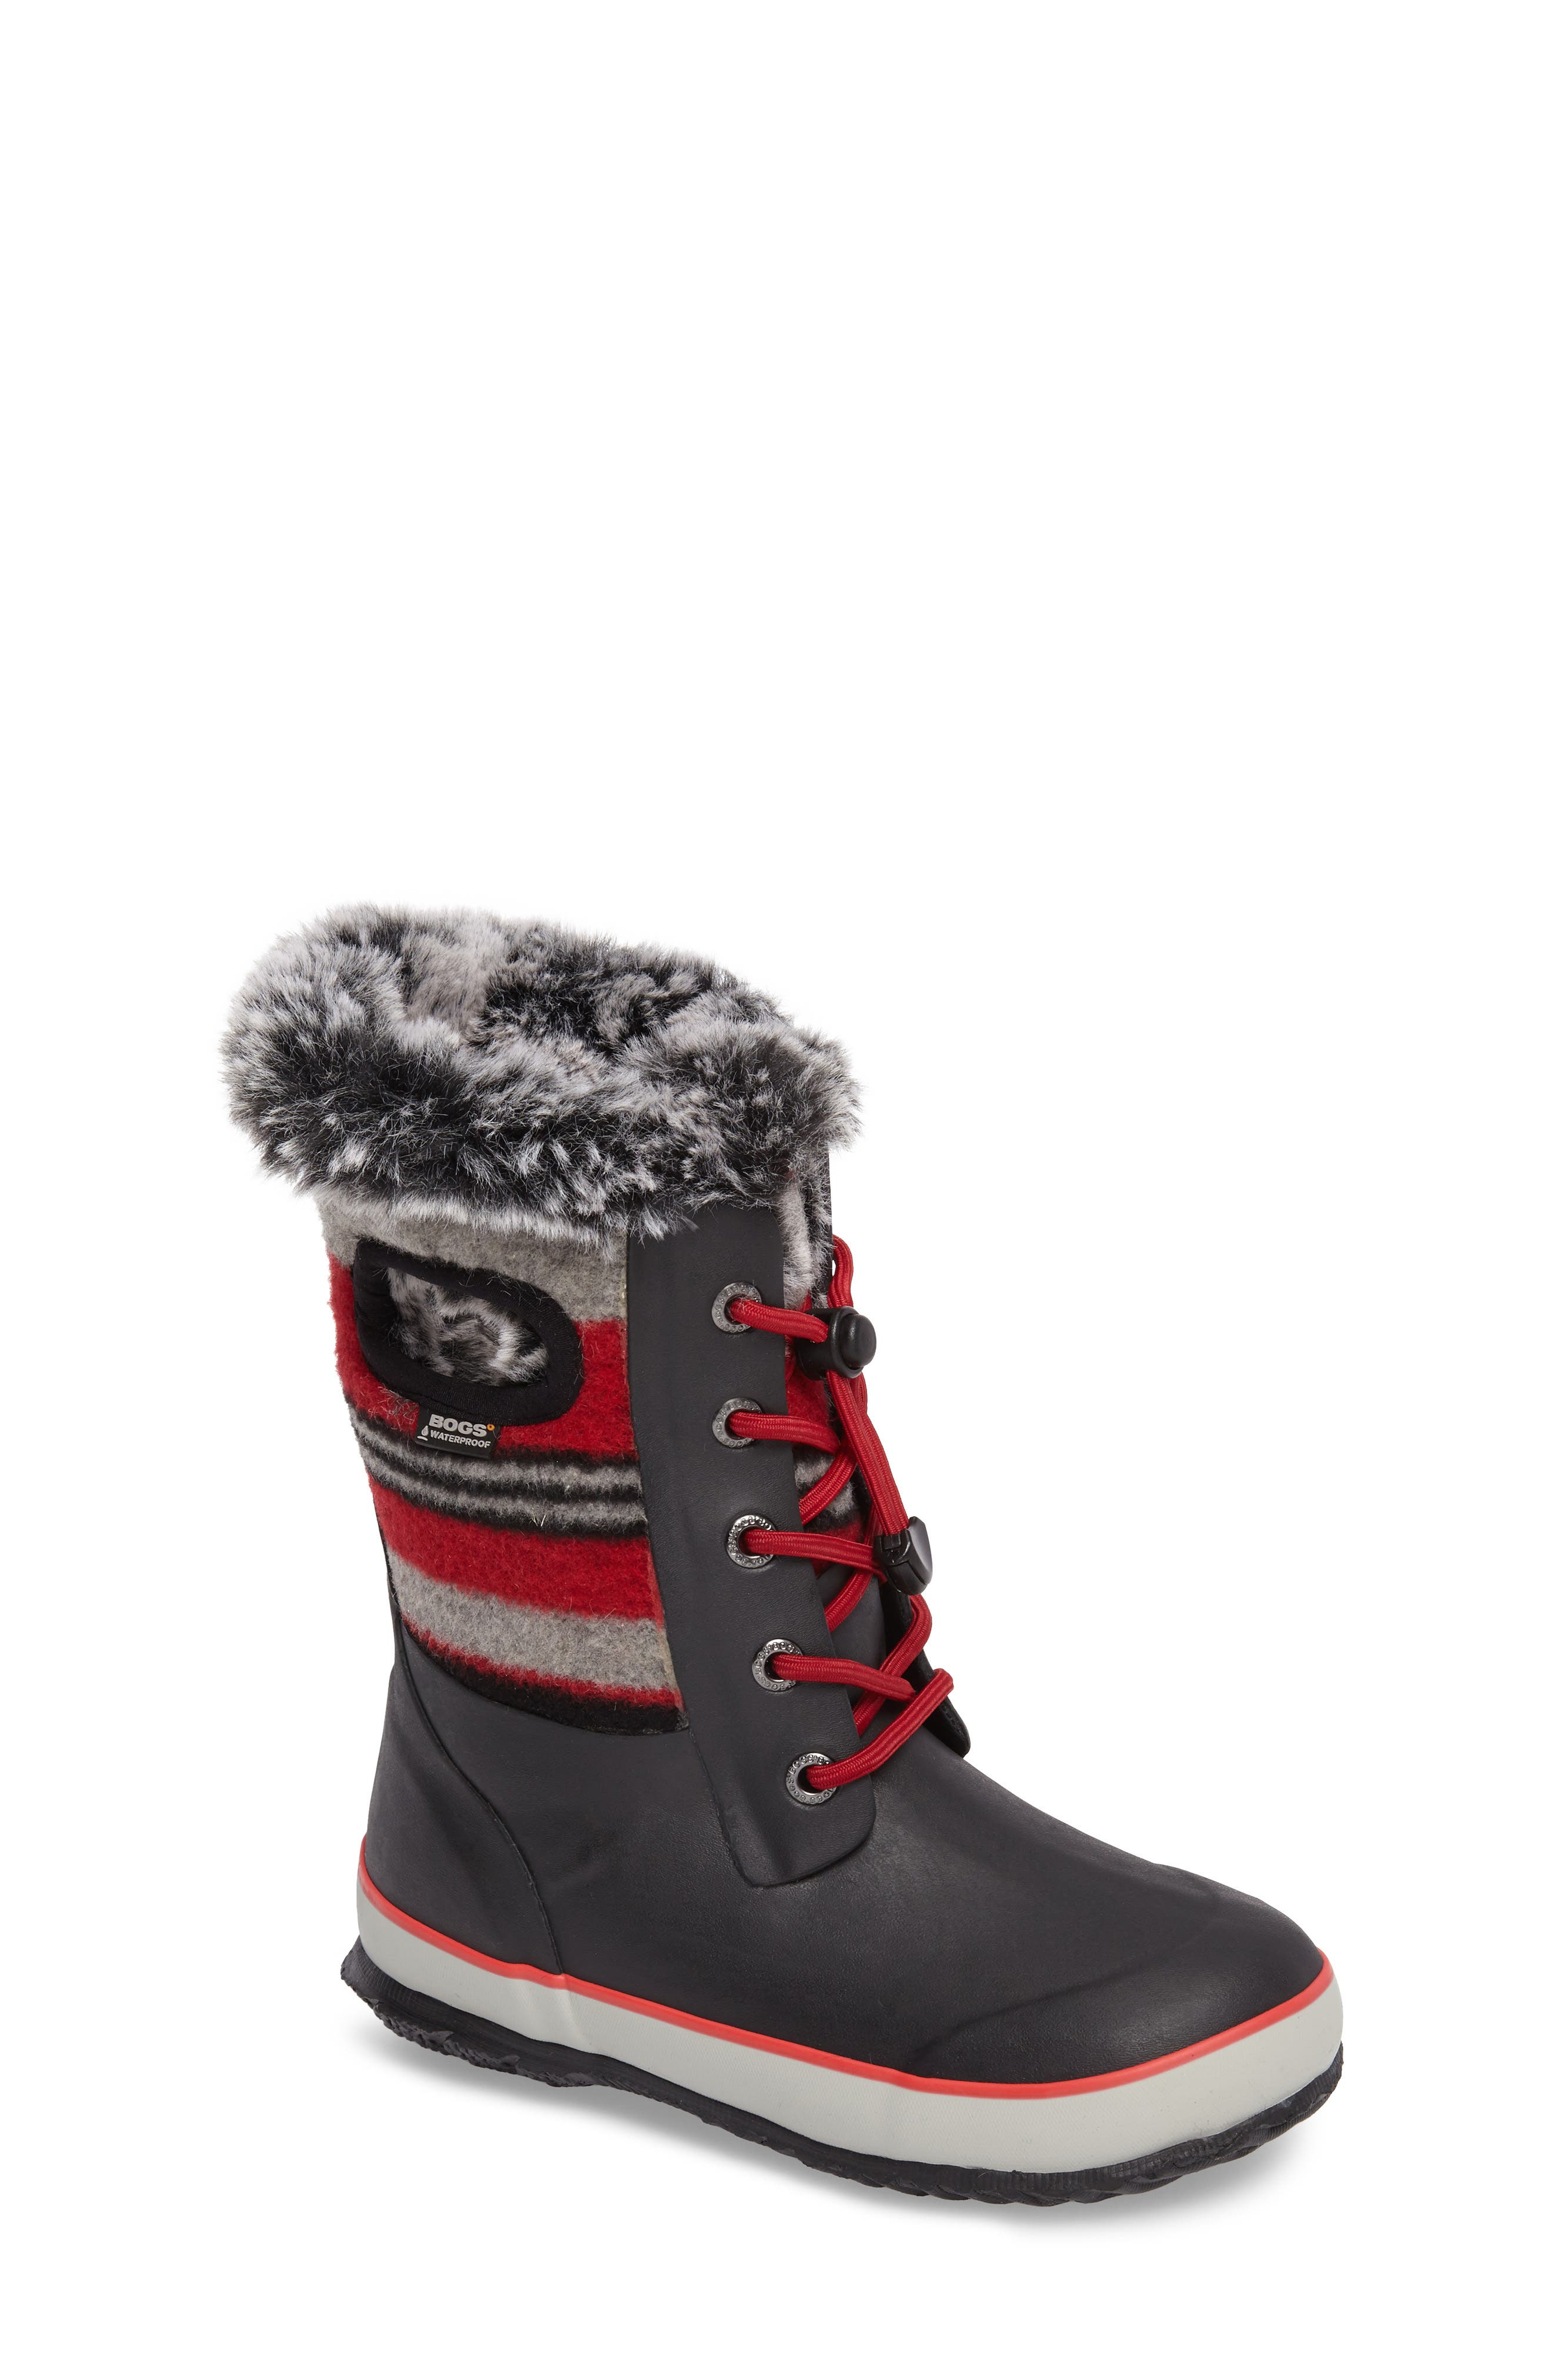 Bogs Arcata Stripe Waterproof Insulated Faux Fur Boot (Walker, Toddler, Little Kid & Big Kid)